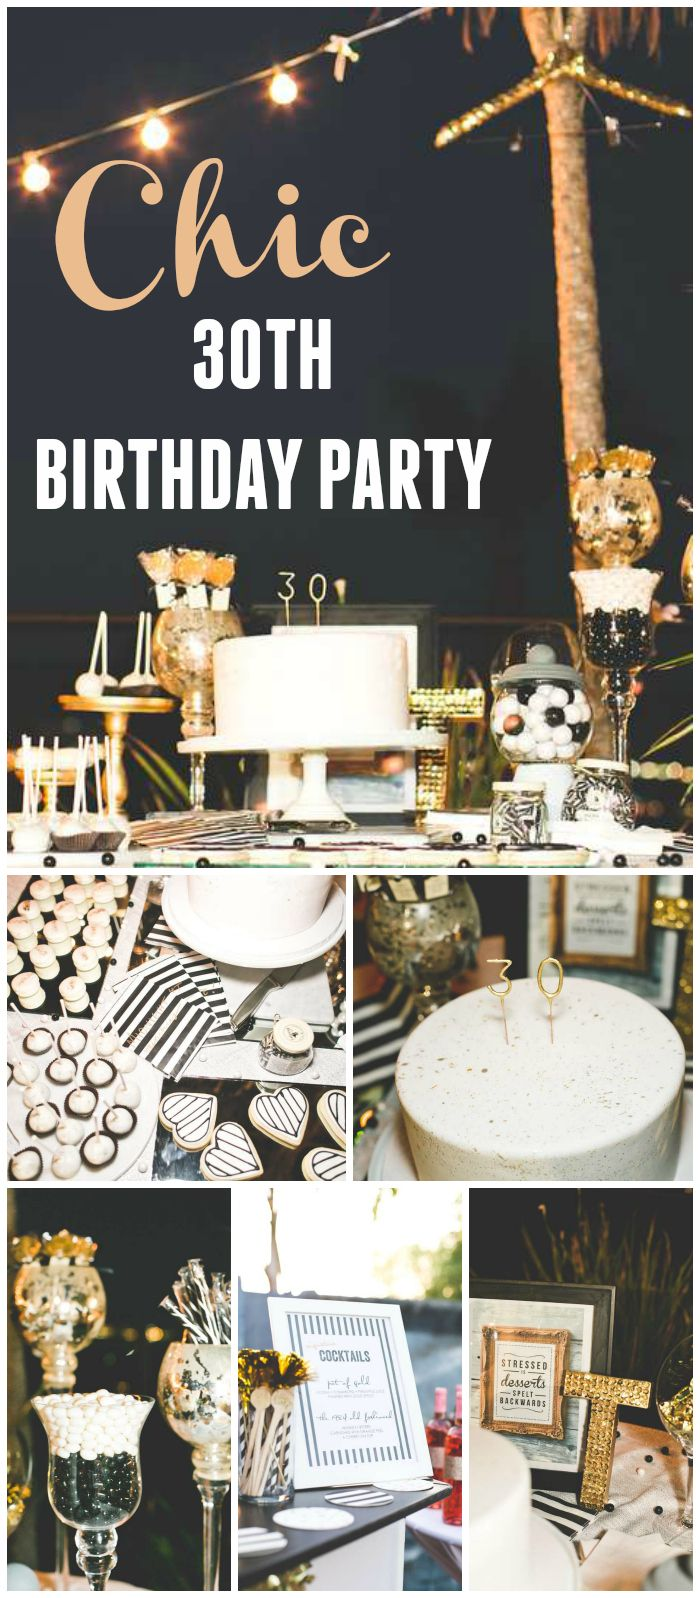 A 30th Birthday Cocktail Event Decorated In Black White Stripes With Chic Gold Accents See More Party Planning Ideas At CatchMyParty